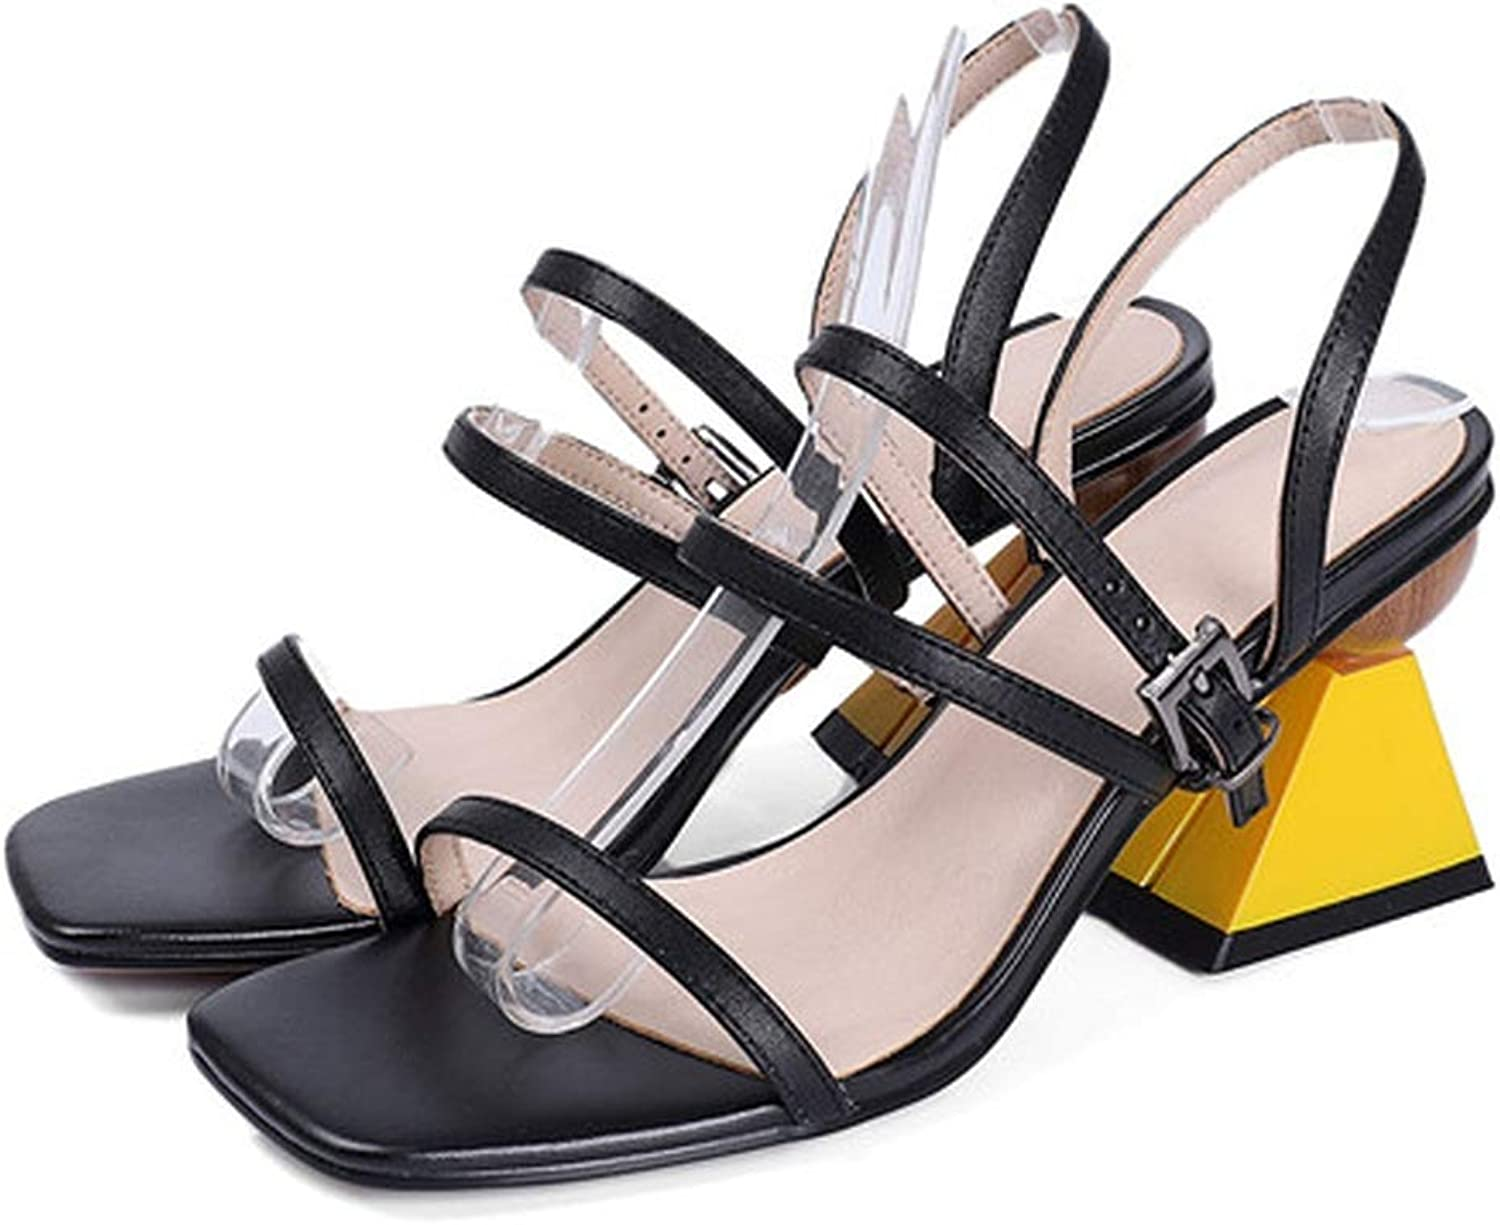 YuJi Women Sandals Natural Cow Leather High Heels shoes Buckle Genuine Leather Party Sandals